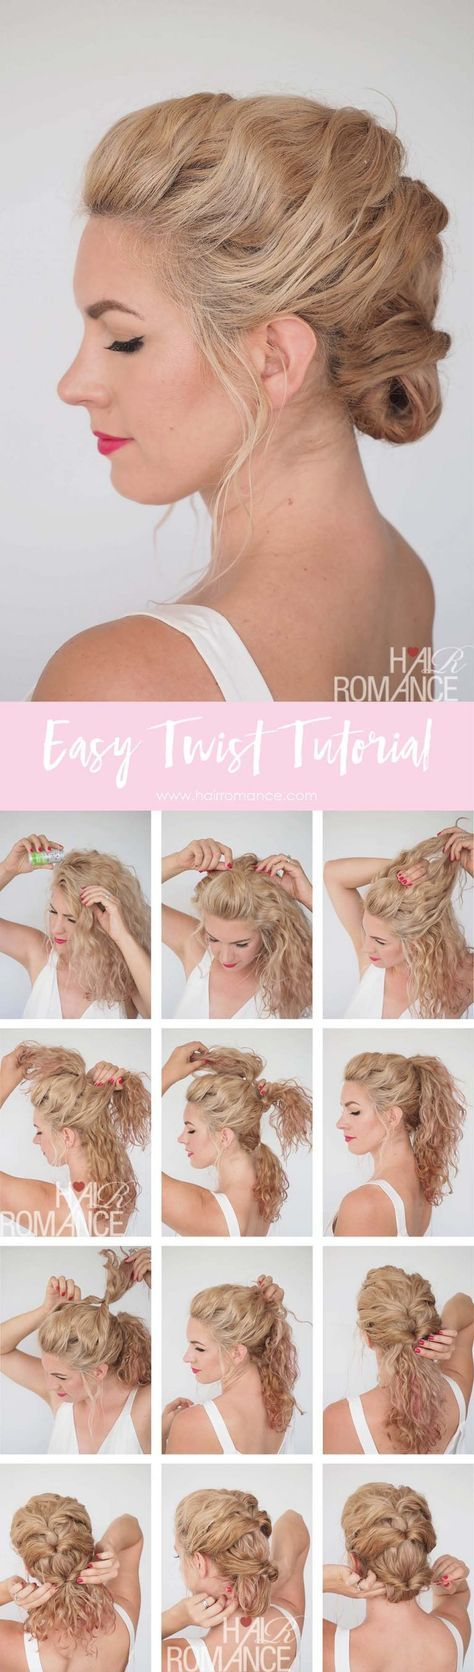 Quick and easy twist hairstyle tutorial u get great hair fast hair